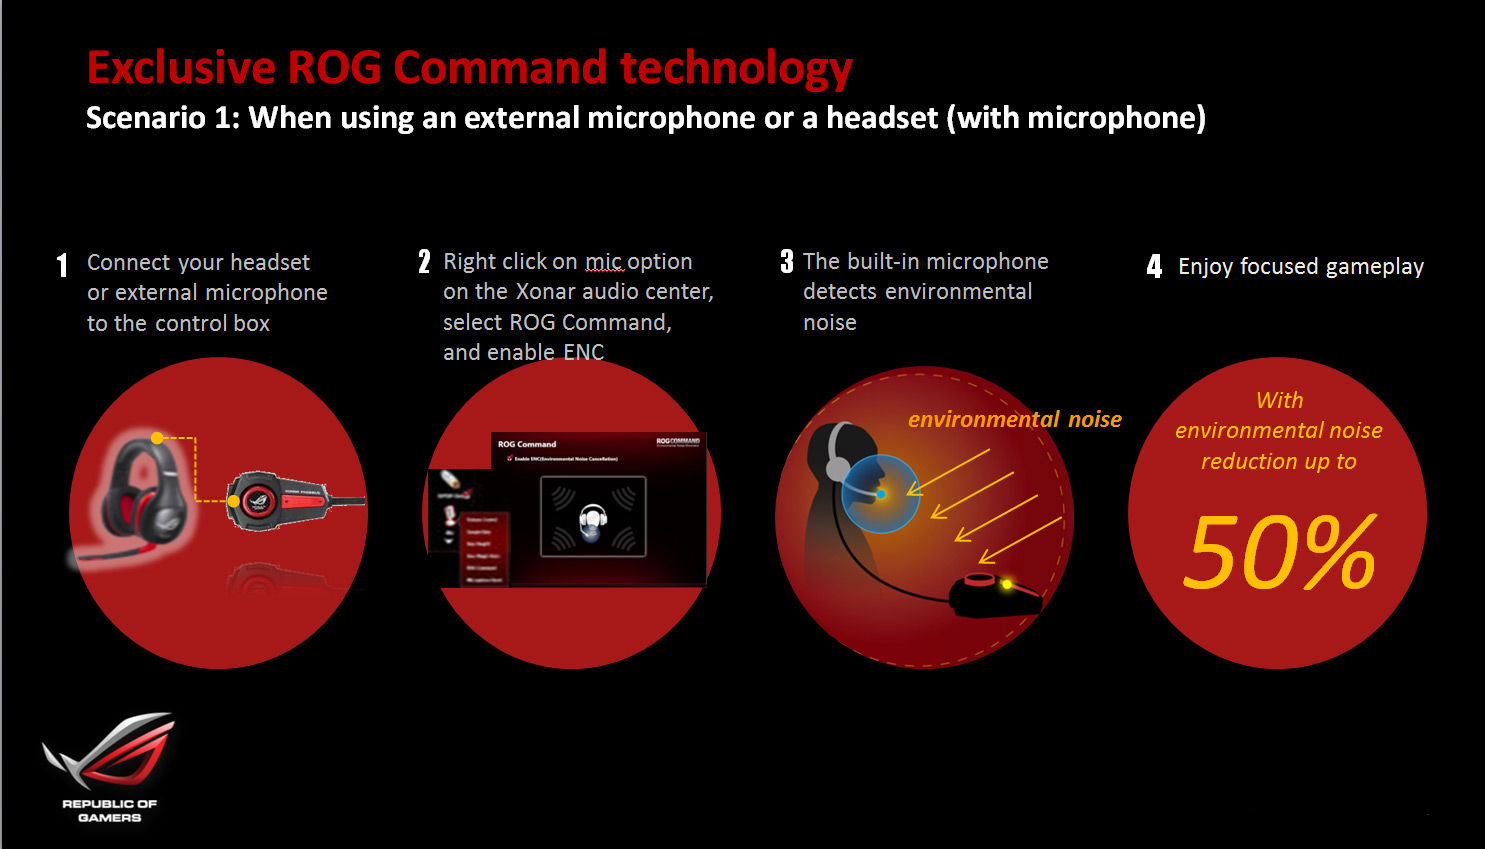 rog-command-technology-1